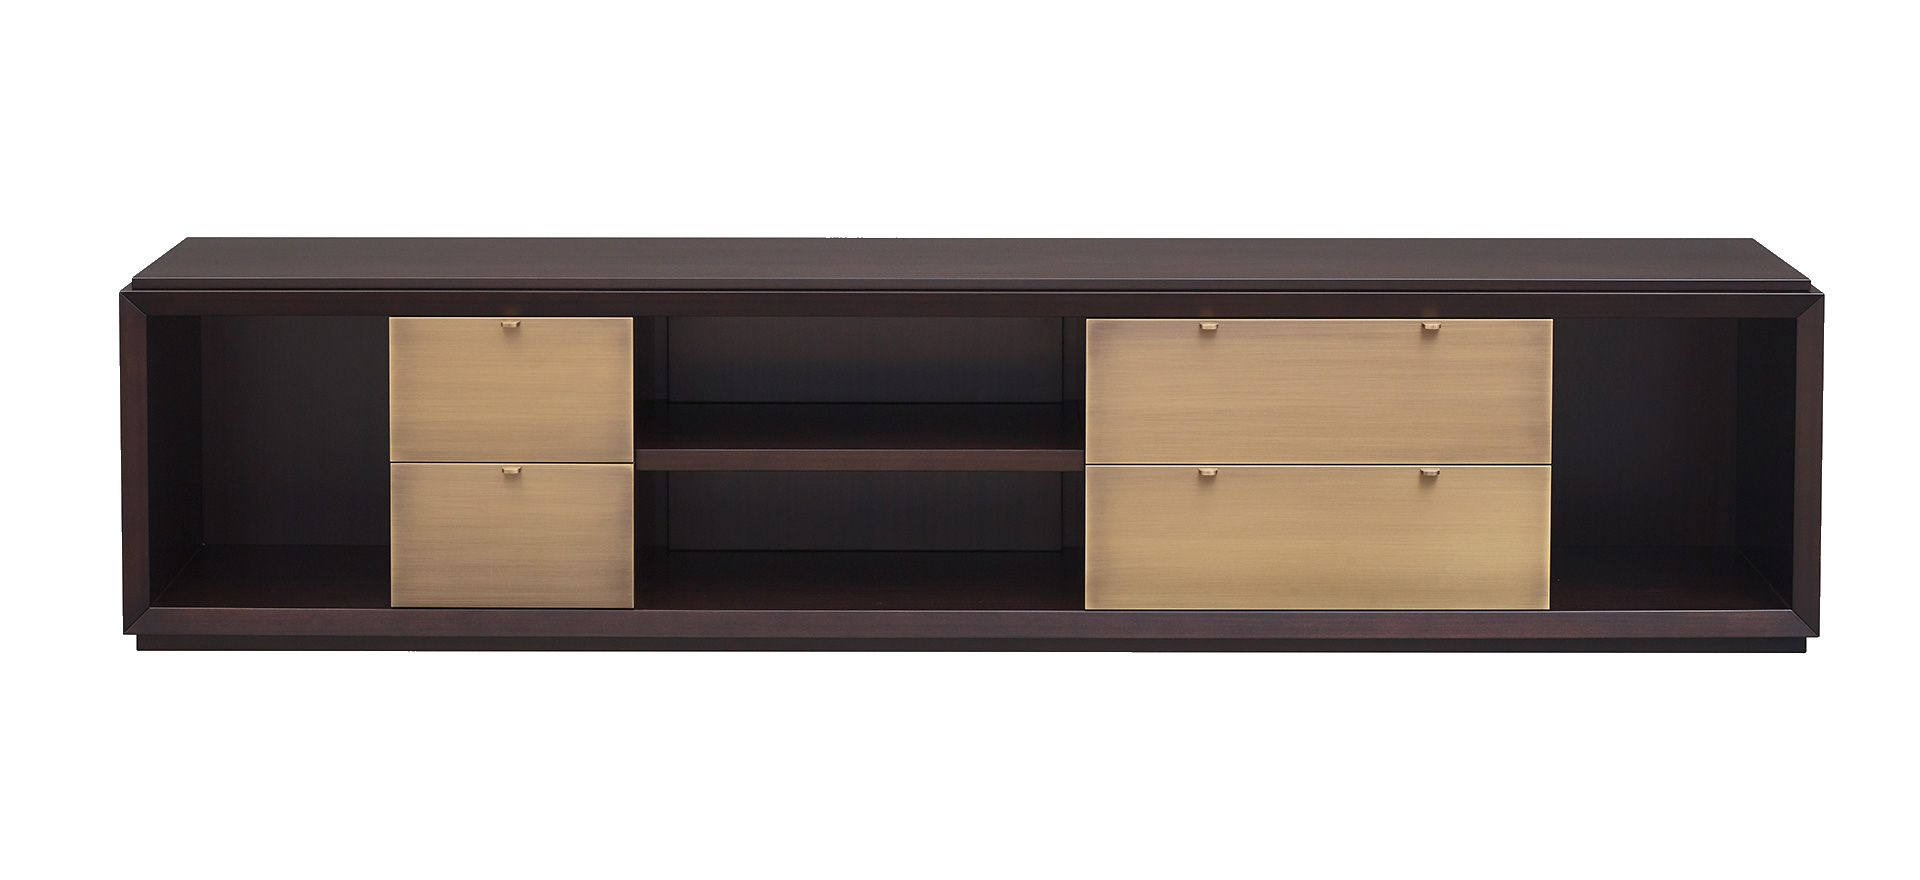 Nightwood Is A Wooden Low Cabinet With Drawers With Bronze Details And Leather Placemats From Promemoria S Amaranth Low Cabinet House And Home Magazine Cabinet